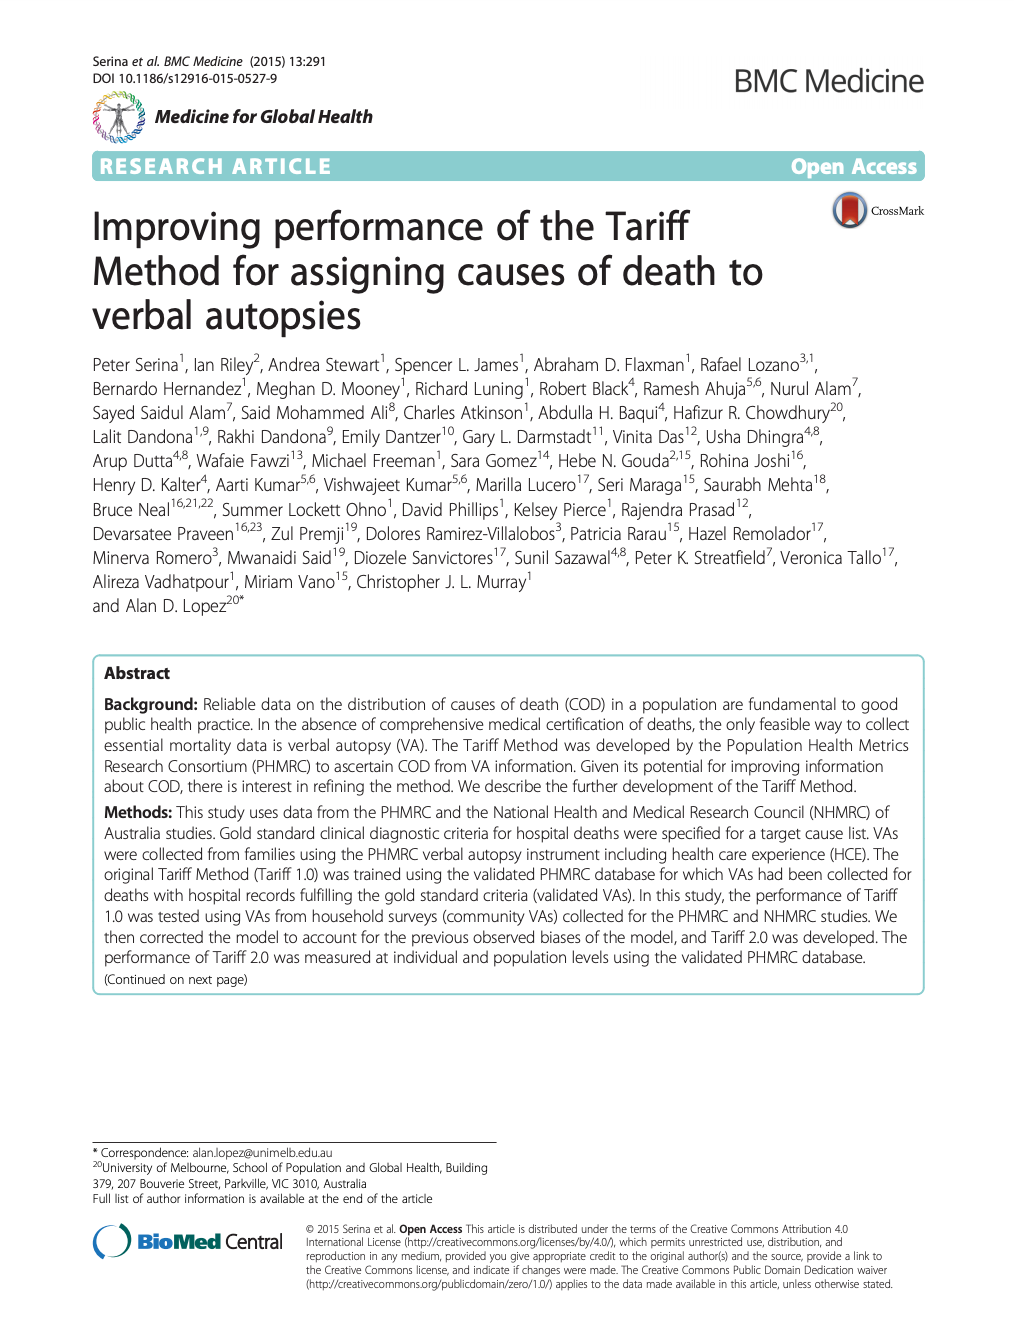 Improving performance of the Tariff